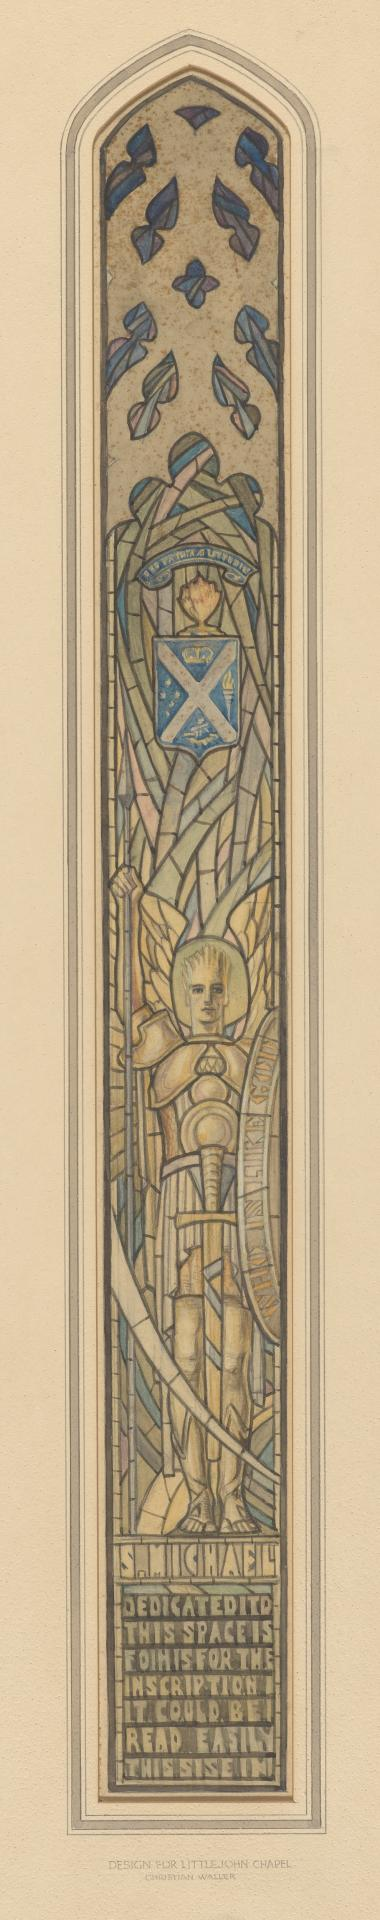 Design for a window at Littlejohn Chapel, Scotch College, Melbourne: St Michael